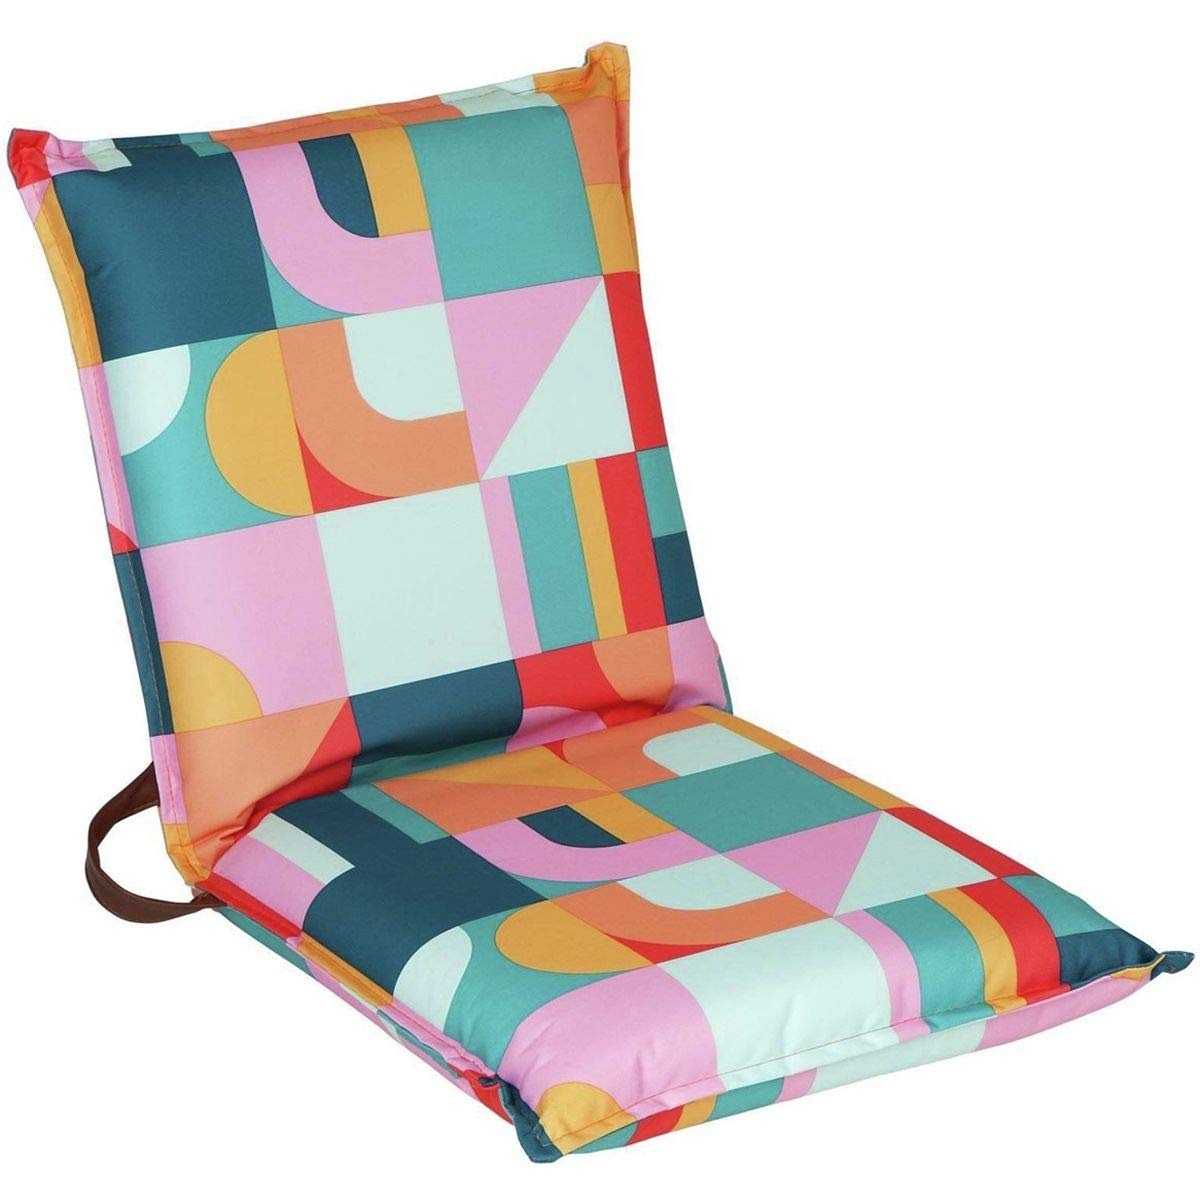 SunnyLIFE Folding Seat Islabomba, One Size